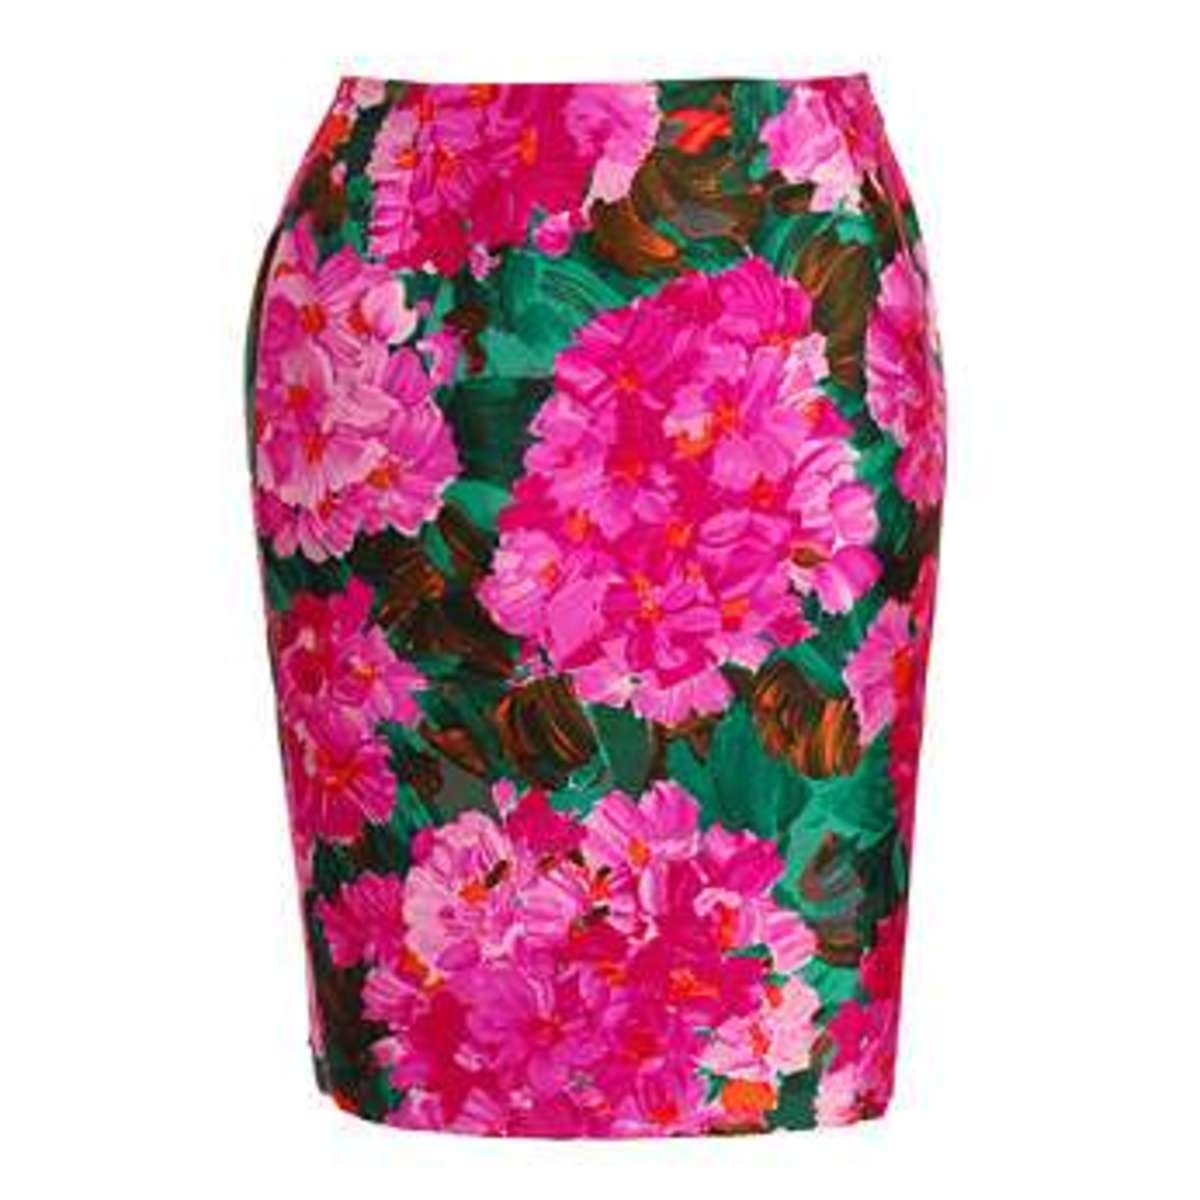 When going for prints use a large print on your lower have like this bold floral. It takes very few of thse large flowers to cover your hips.